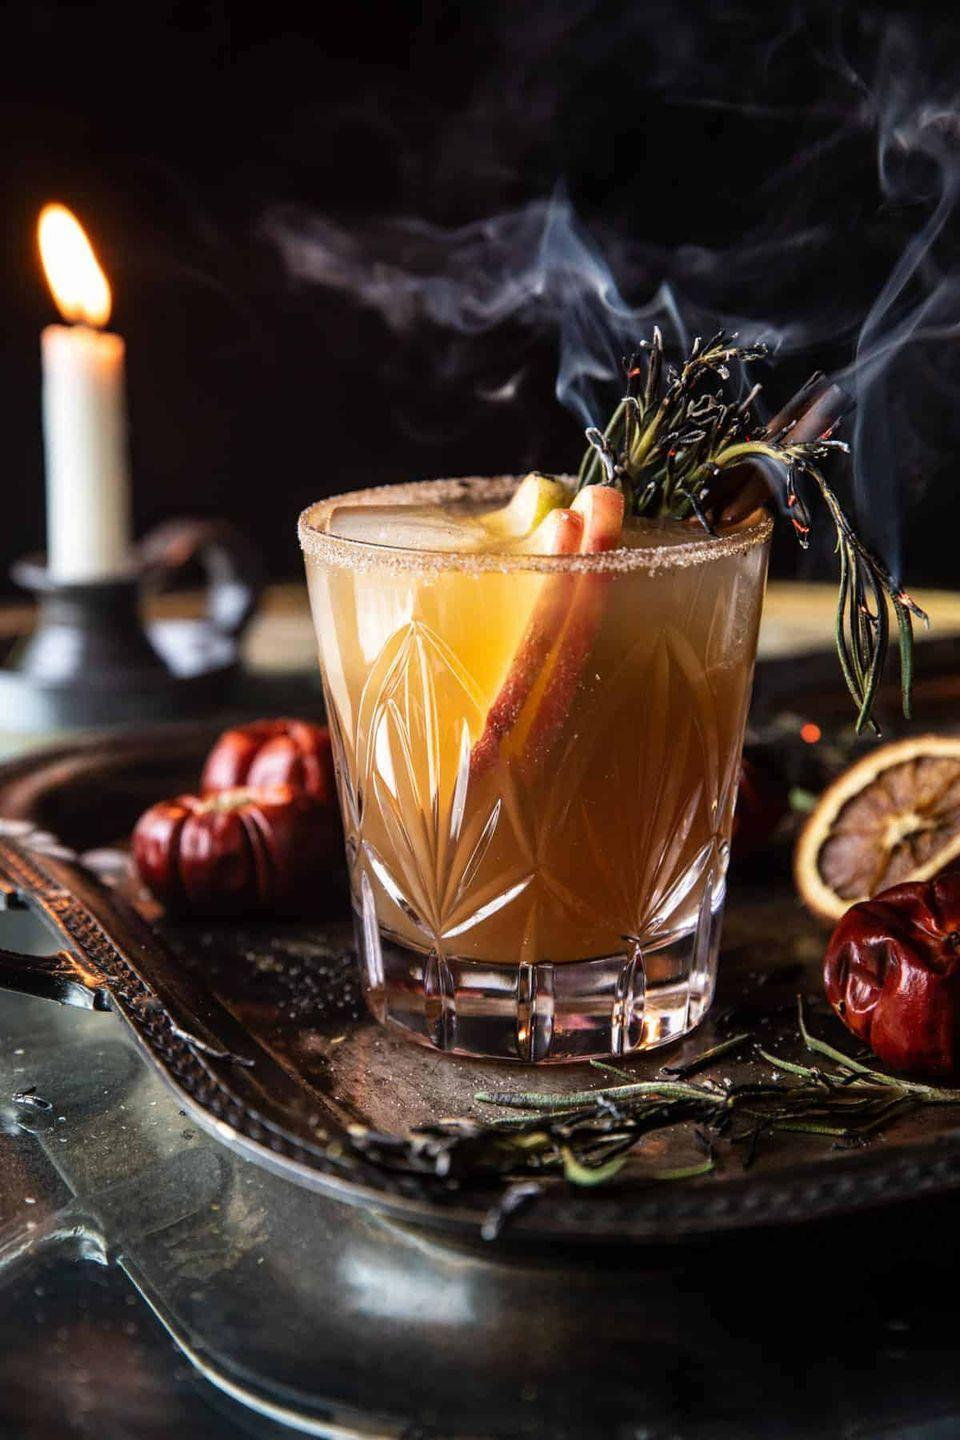 """<p>This spiced bourbon cocktail is topped with sparkling hard cider to give it a bit of fizz. It's full of delicious fall flavors, so you don't need to wait until Halloween night to make it!</p><p><strong>Get the recipe at <a href=""""https://www.halfbakedharvest.com/nightmare-on-bourbon-street/"""" rel=""""nofollow noopener"""" target=""""_blank"""" data-ylk=""""slk:Half Baked Harvest"""" class=""""link rapid-noclick-resp"""">Half Baked Harvest</a>. </strong></p><p><a class=""""link rapid-noclick-resp"""" href=""""https://go.redirectingat.com?id=74968X1596630&url=https%3A%2F%2Fwww.walmart.com%2Fsearch%2F%3Fquery%3Dcocktail%2Bshaker&sref=https%3A%2F%2Fwww.thepioneerwoman.com%2Fholidays-celebrations%2Fg36982659%2Fhalloween-drink-recipes%2F"""" rel=""""nofollow noopener"""" target=""""_blank"""" data-ylk=""""slk:SHOP COCKTAIL SHAKERS"""">SHOP COCKTAIL SHAKERS</a></p>"""